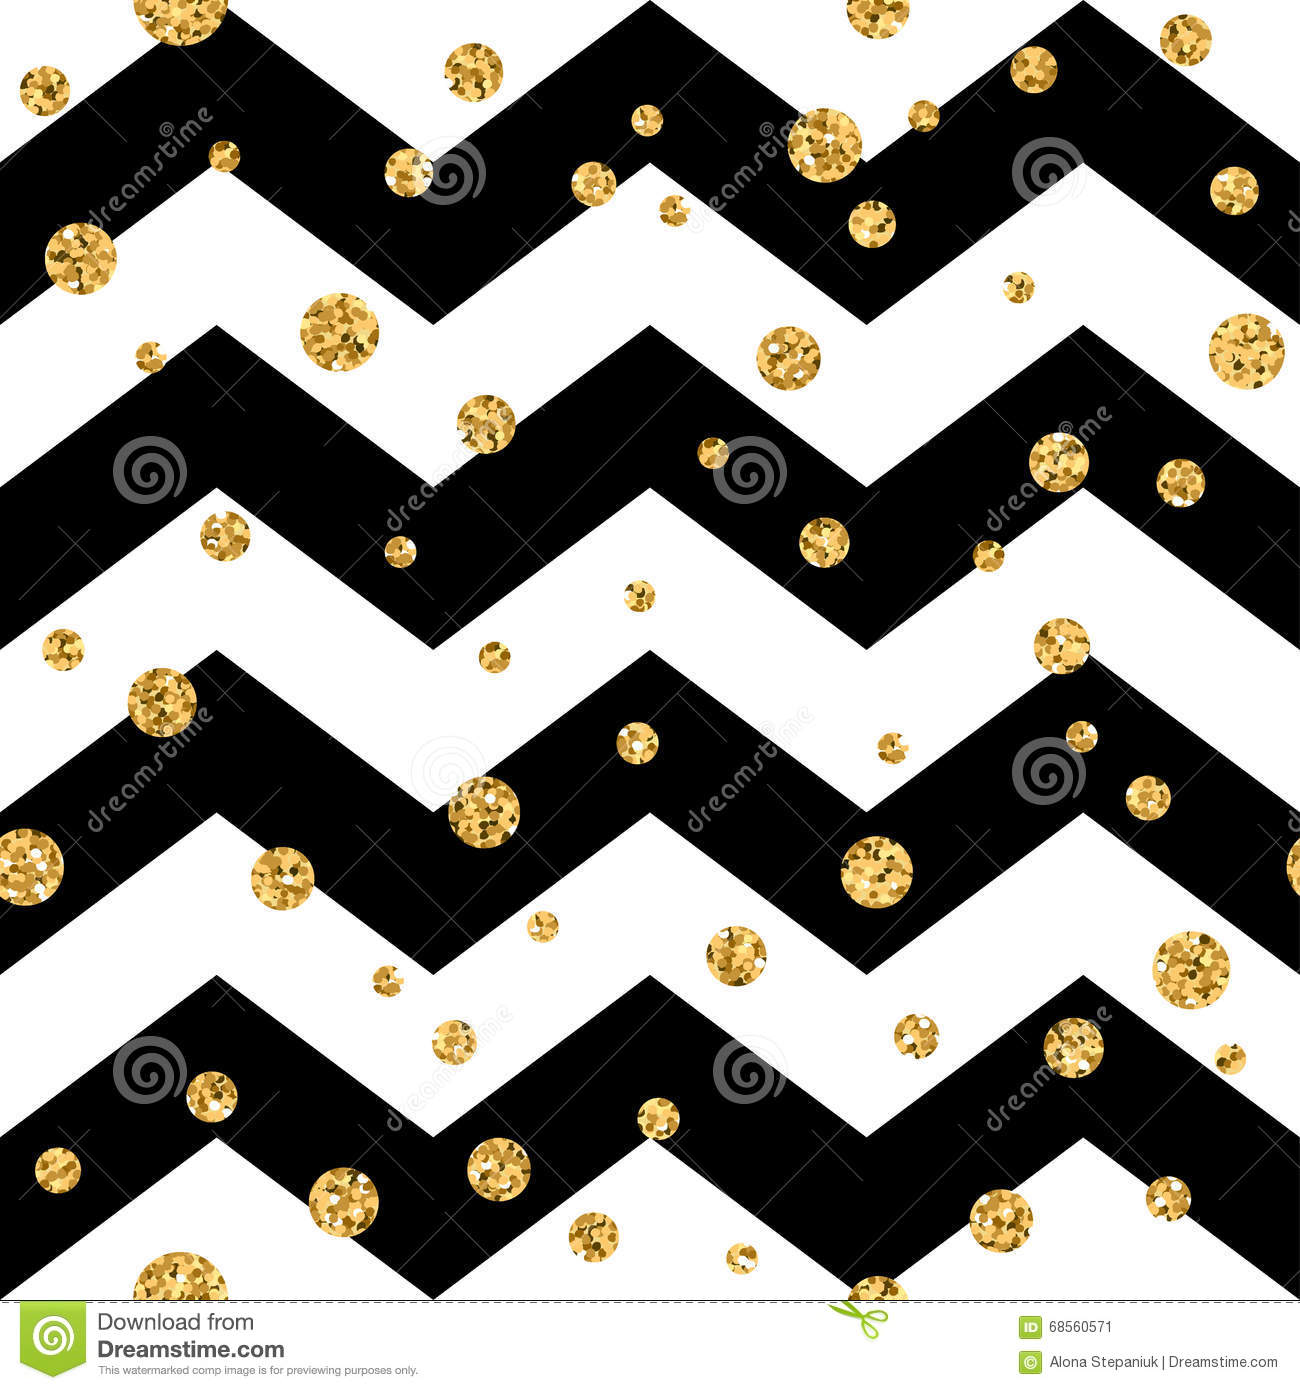 Golden Polka Dot Seamless Pattern Gold Confetti Glitter